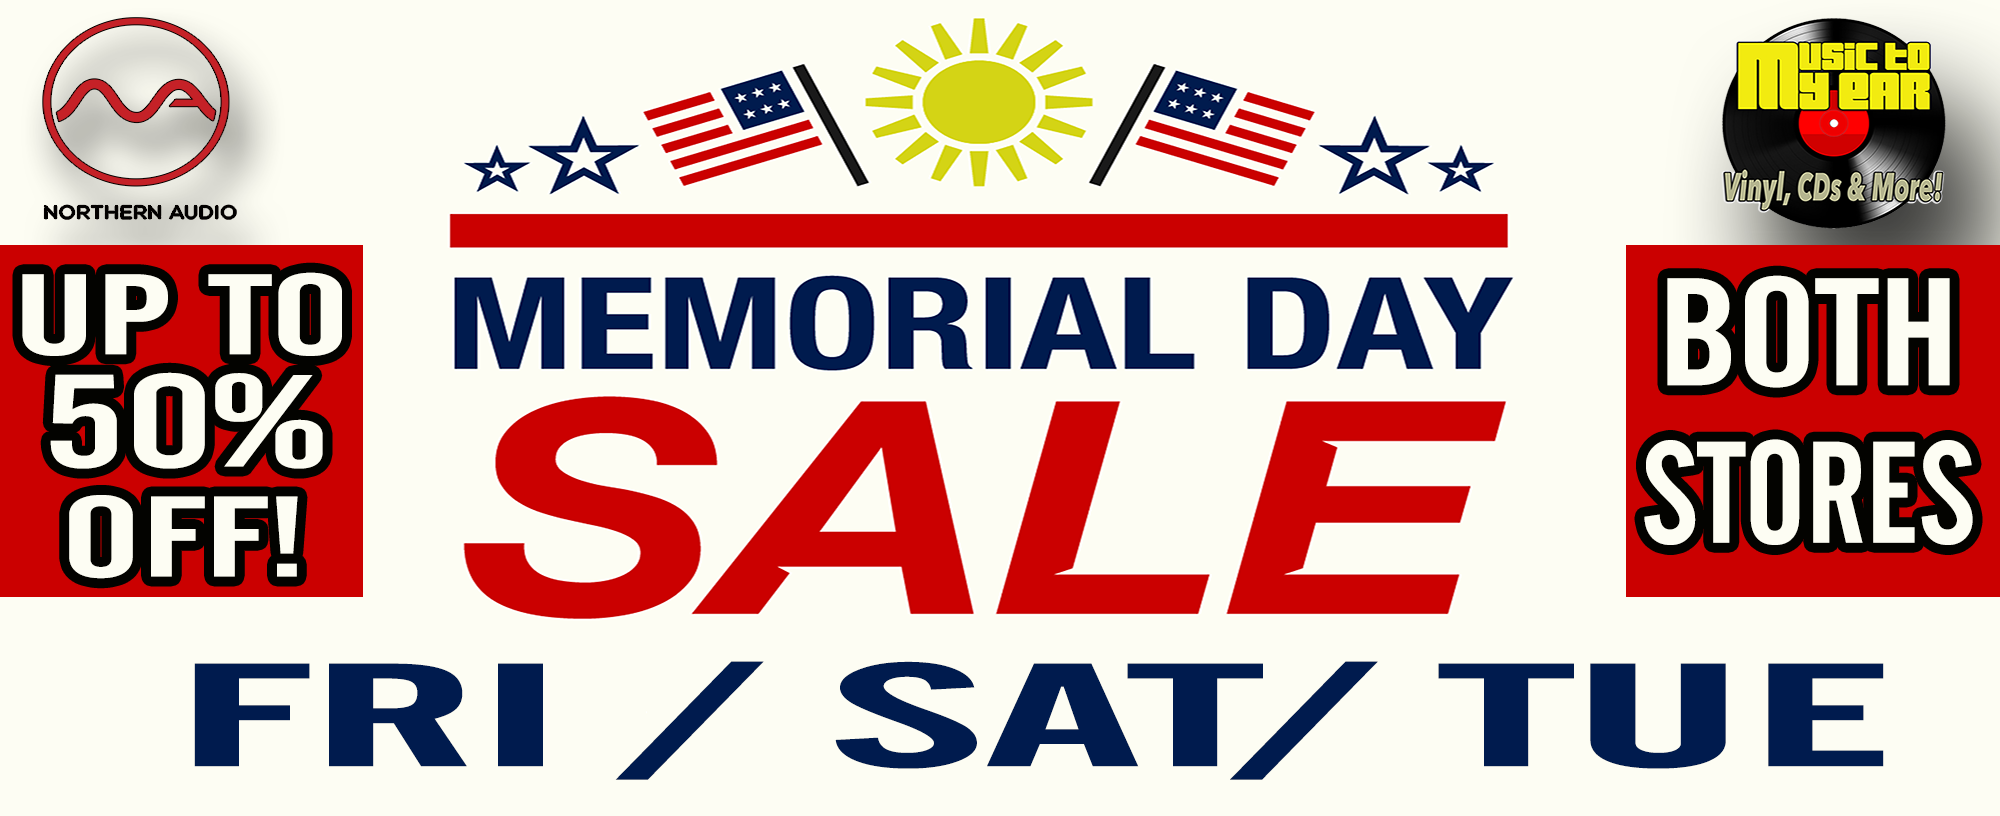 Memorial Day Sales Event At Music To My Ear